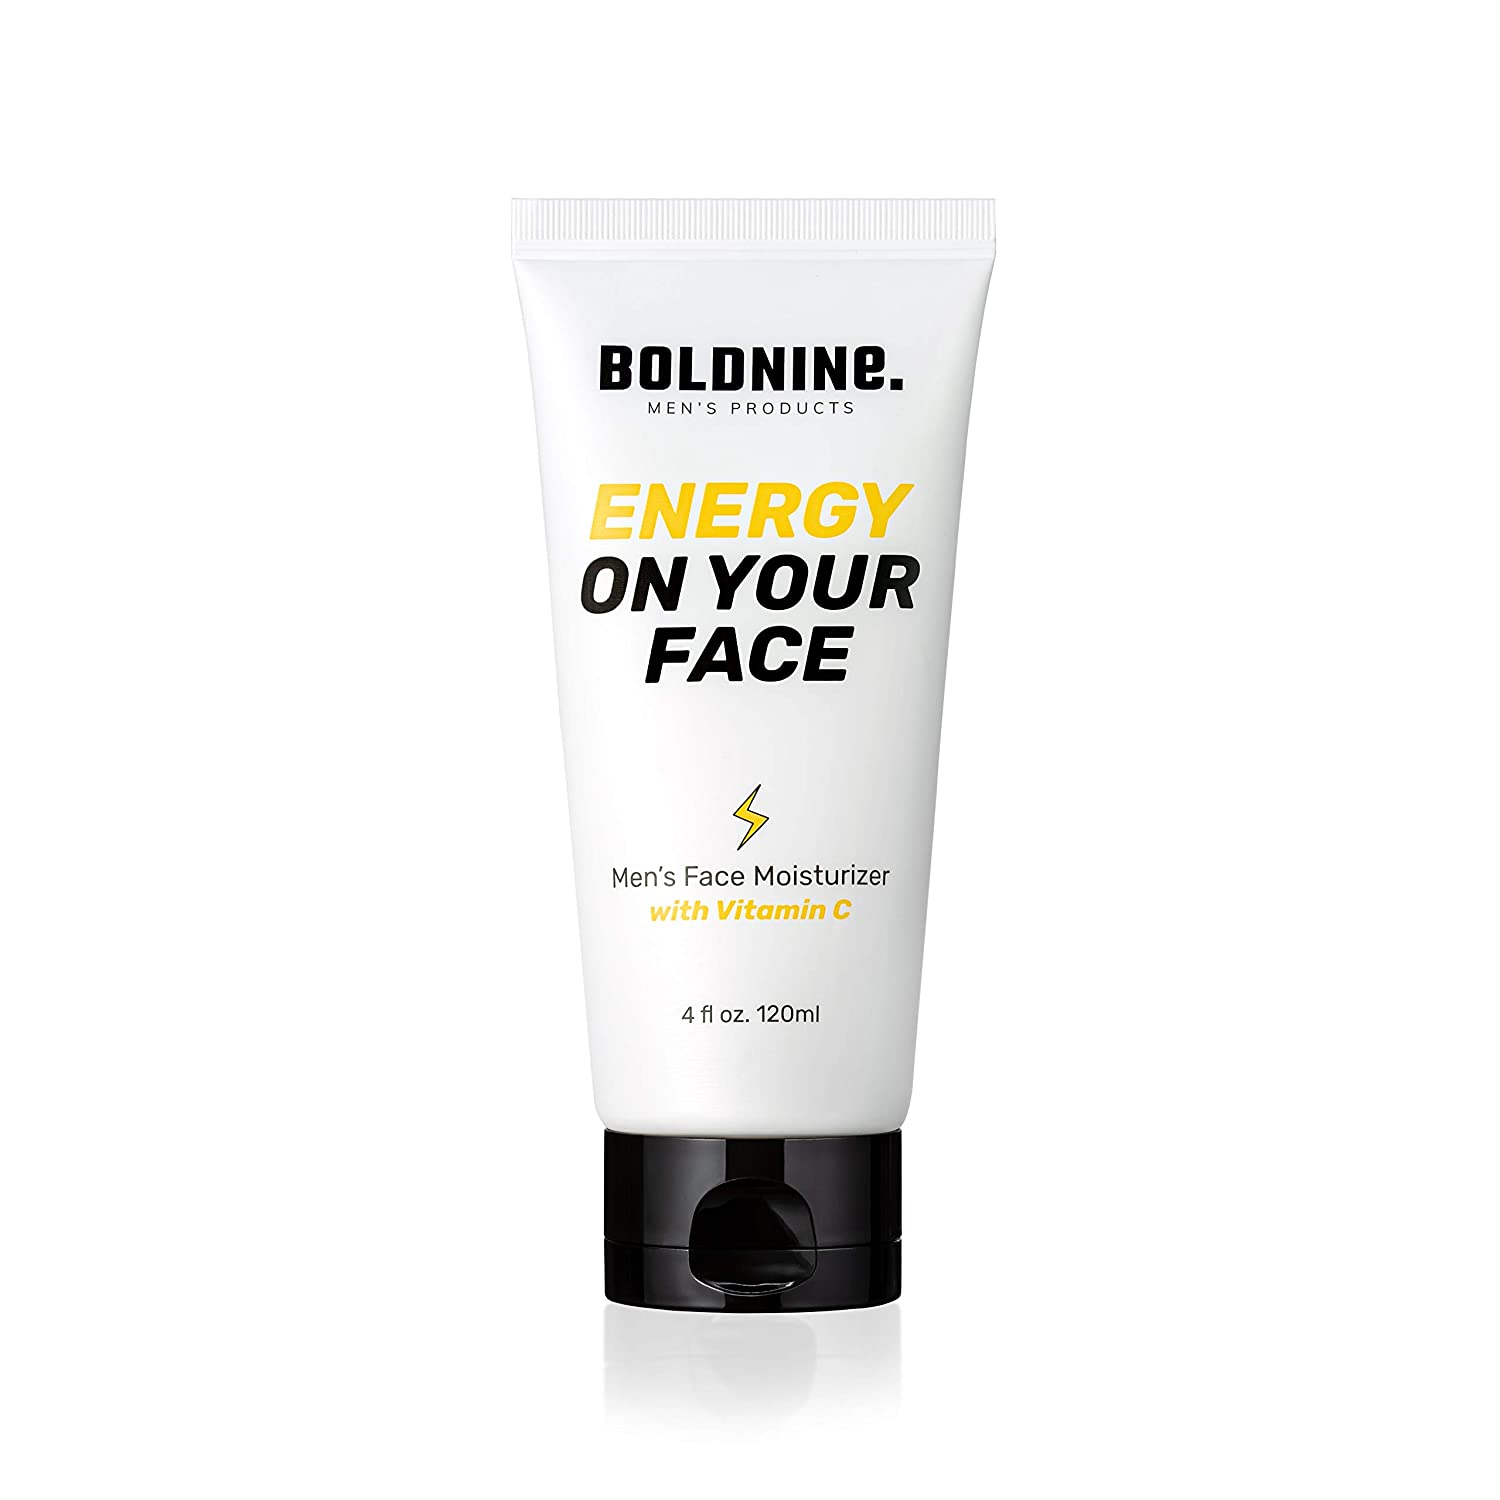 Boldnine Men's Vitamin C Facial Moisturizer 4oz | Improve Your Complexion with Hydrating Facial Cream, Camelia Oil | Suitable for Dry & Combination Skin, Natural Ingredients